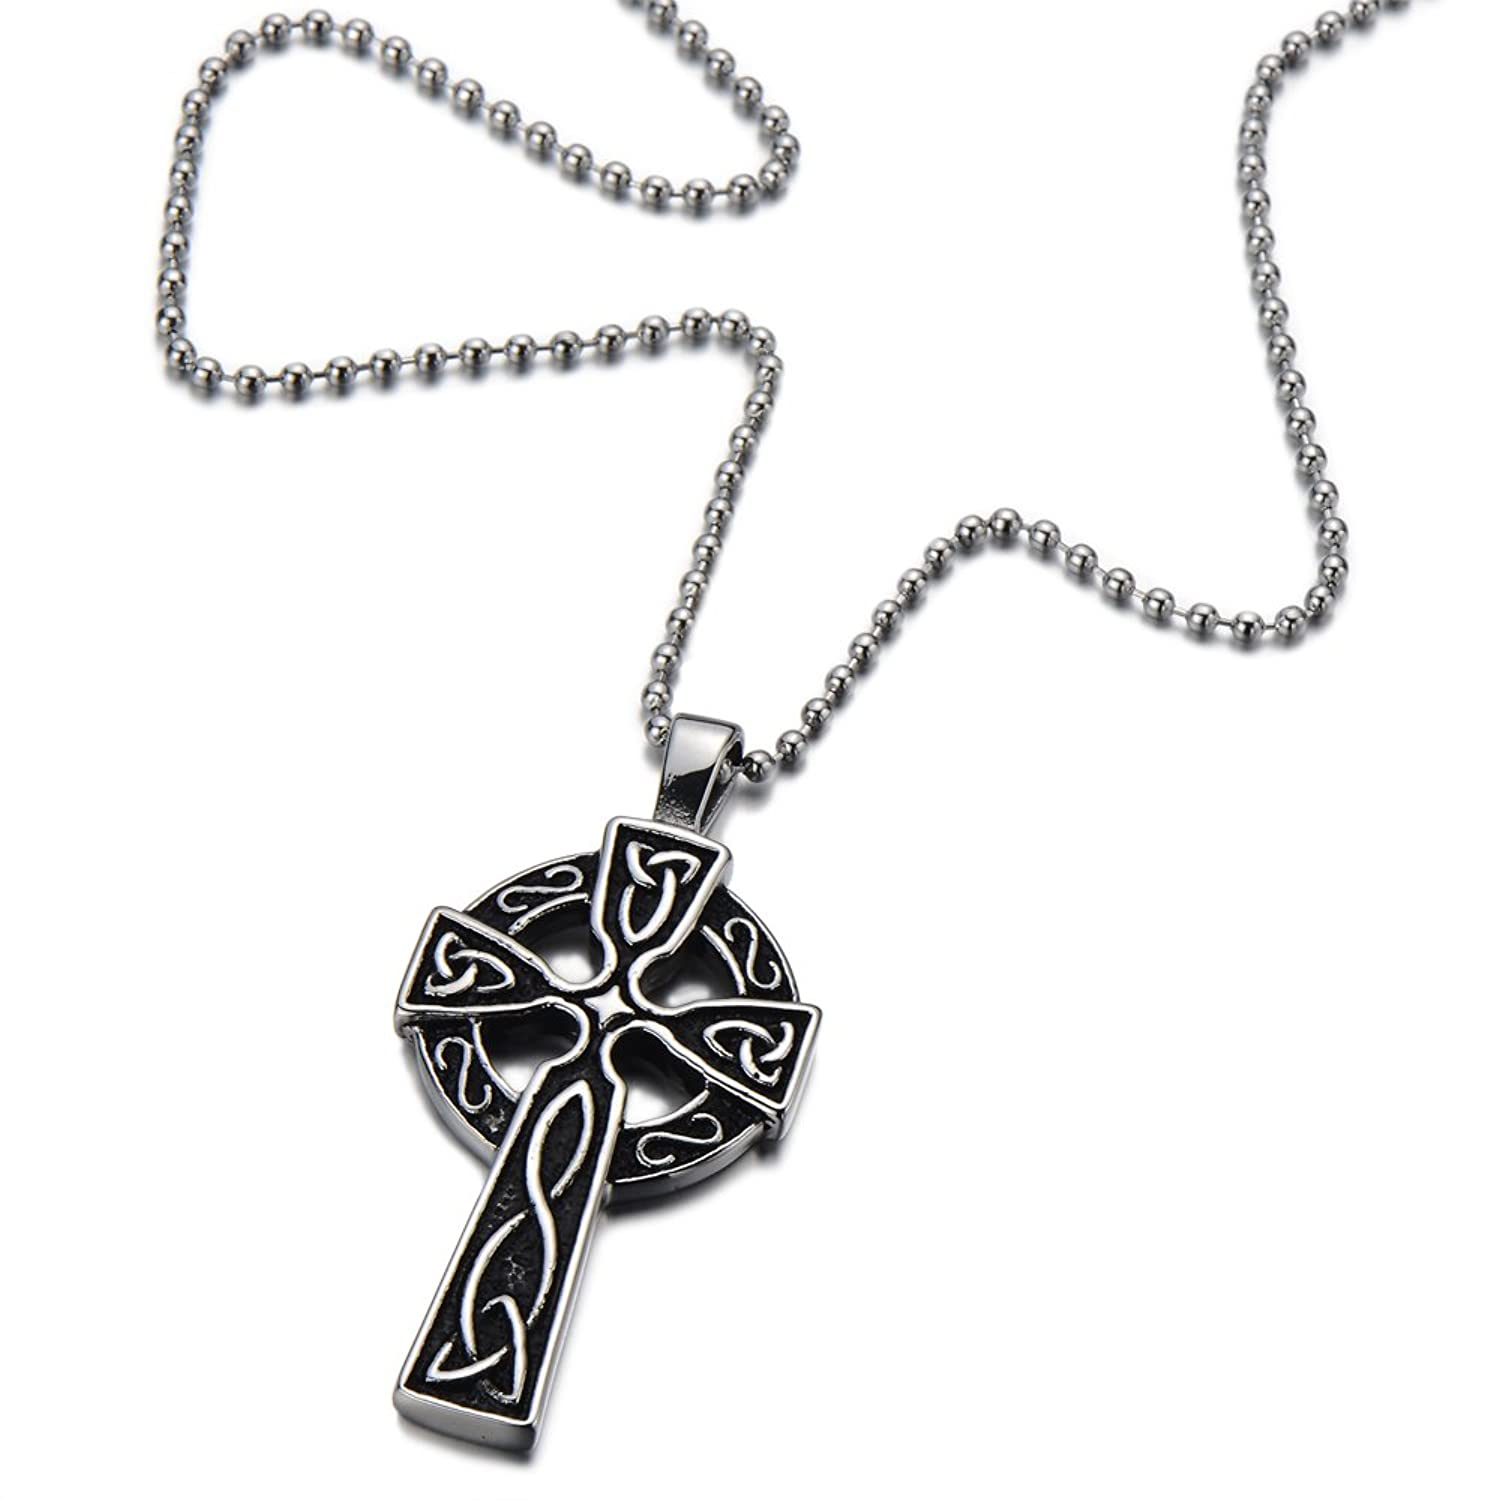 necklace celtic product jewelry jewelr handmade was by cross sale now kennedy irish